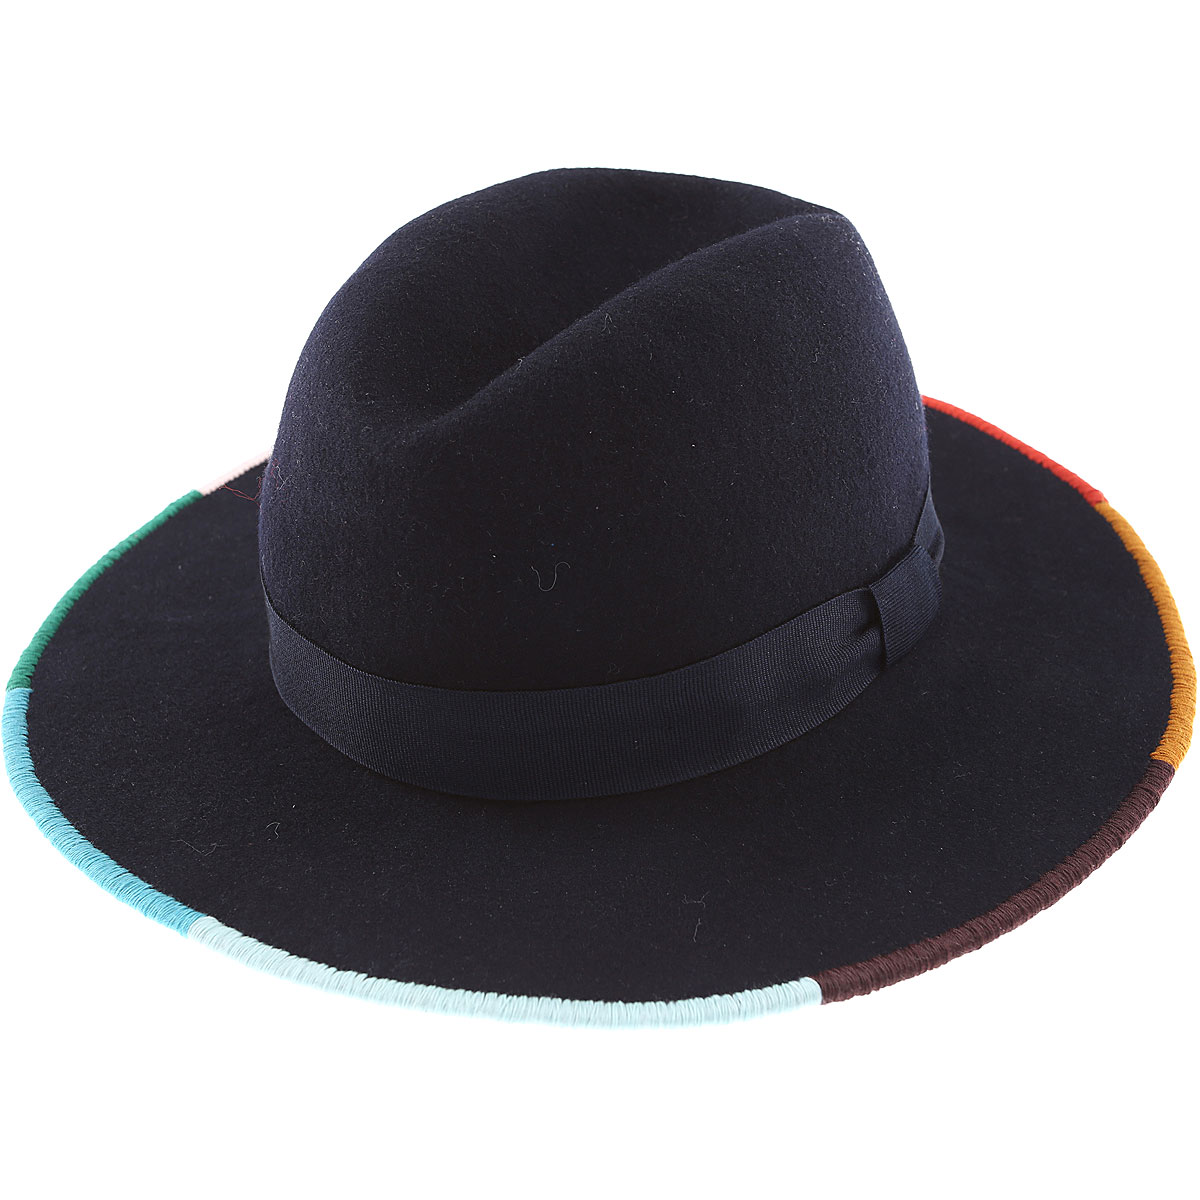 Paul Smith Hat for Women Dark Midnight Blue USA - GOOFASH